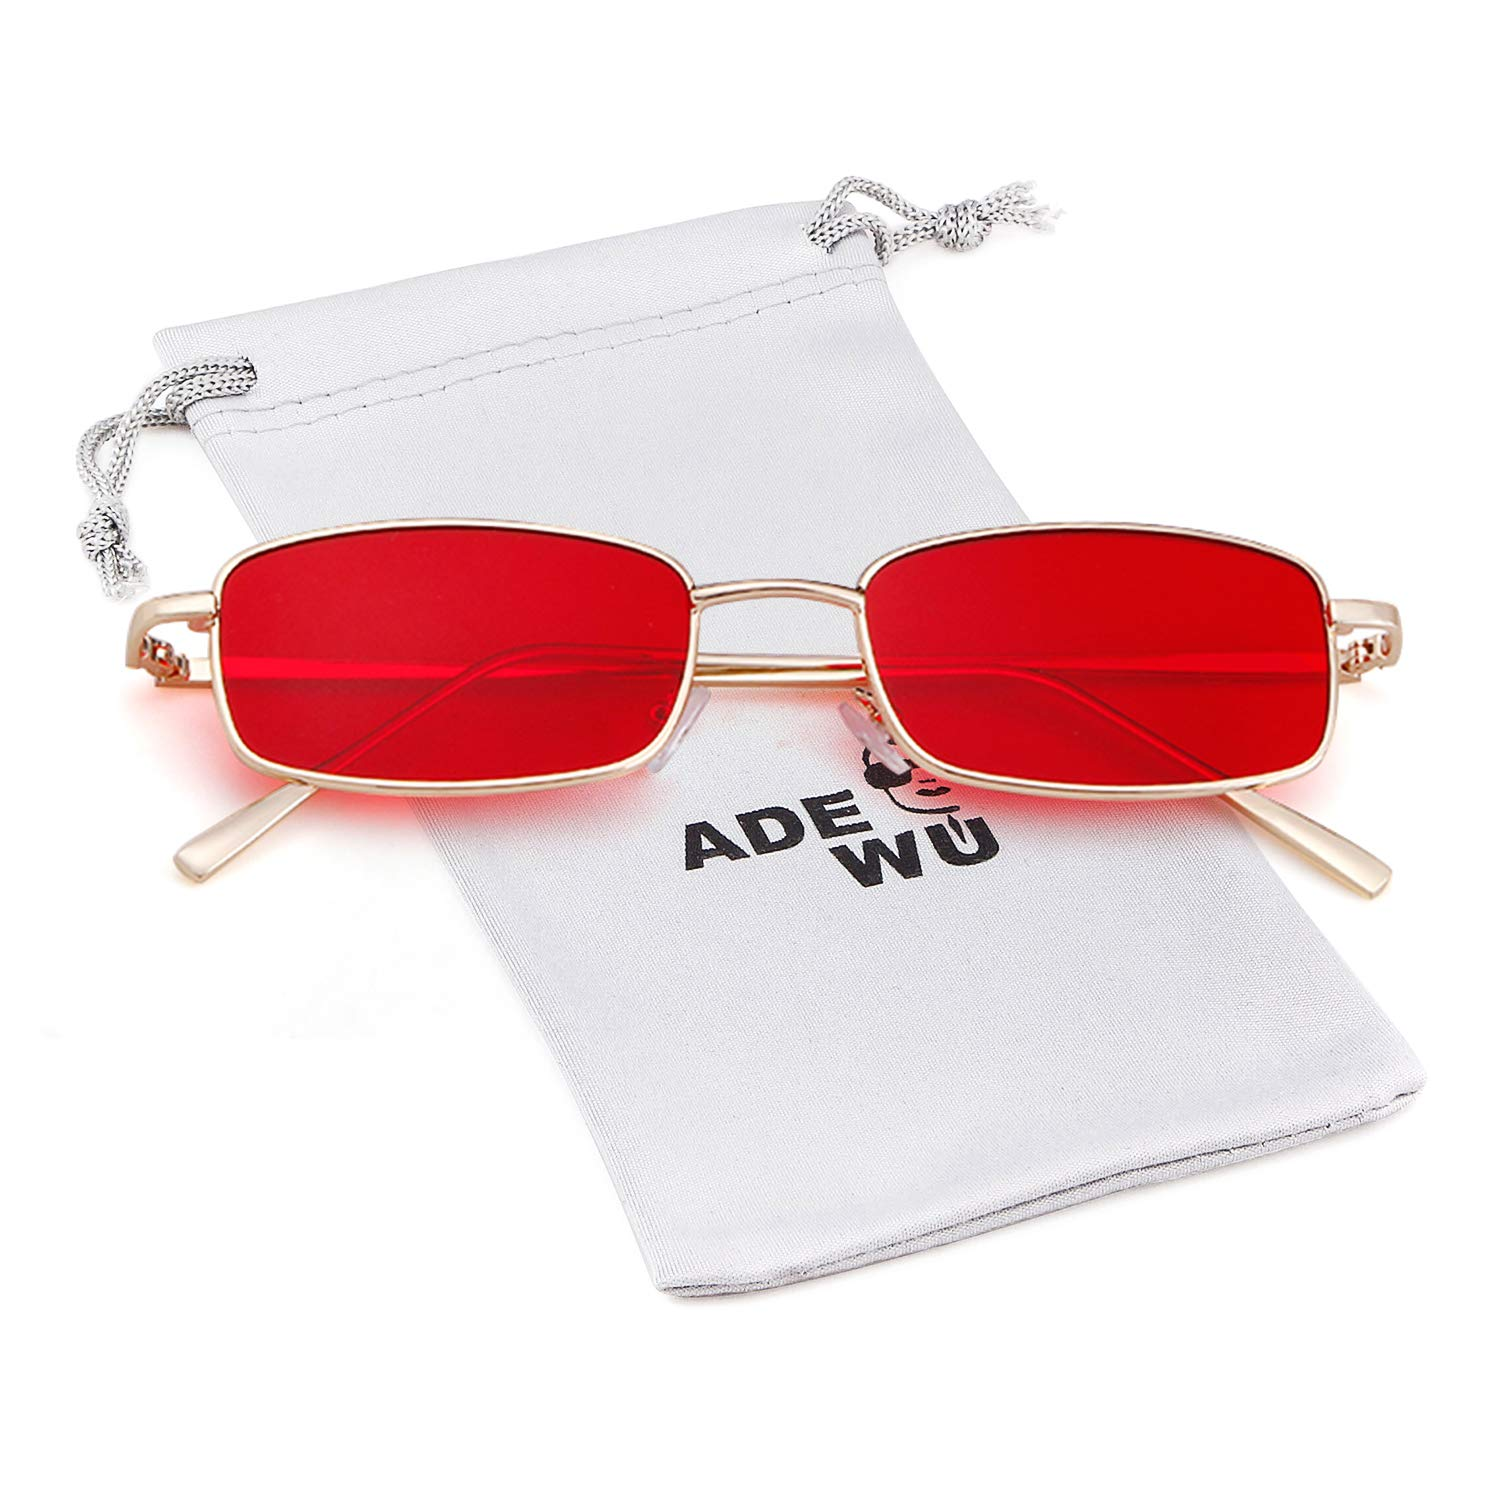 Vintage Steampunk Sunglasses Fashion Metal Frame Clear Lens Shades for Women guoxuan STYS31035-C5